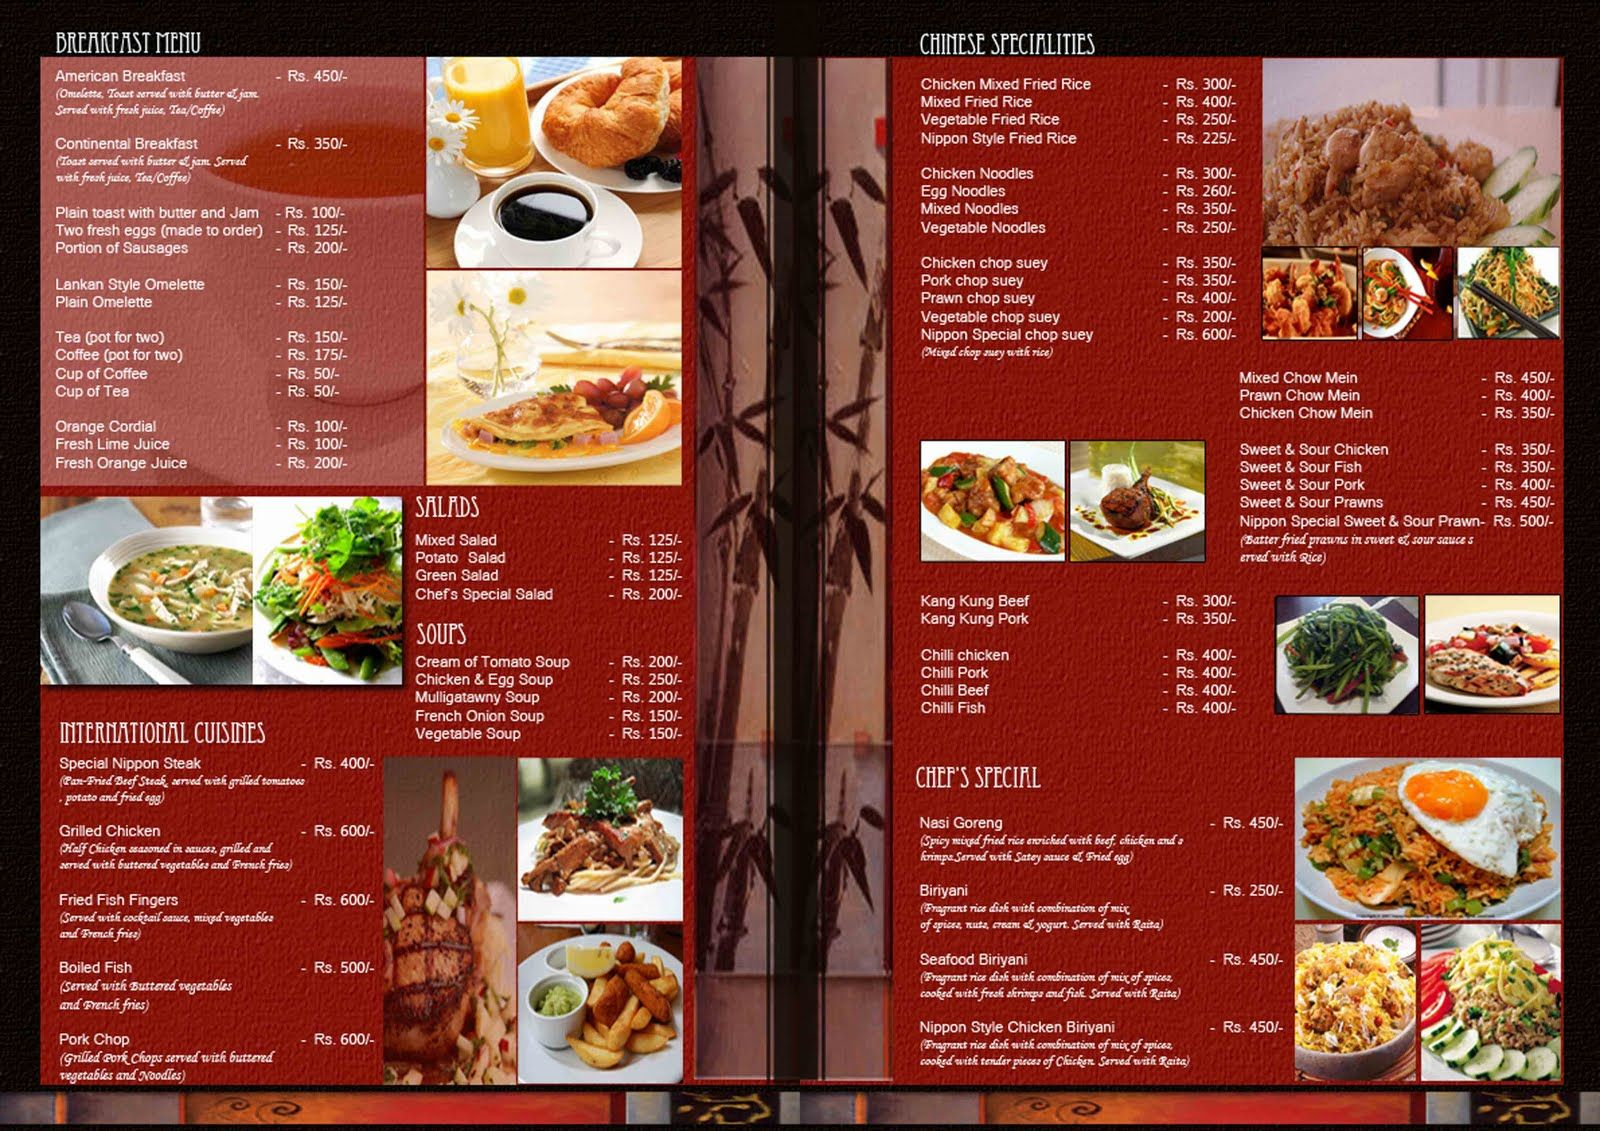 Menu Design Ideas chow cheers nandos restaurant menu design Oriental Restaurant Menu Design Ideas Restaurant Menu Design That Can Give You Inspiration Home Design